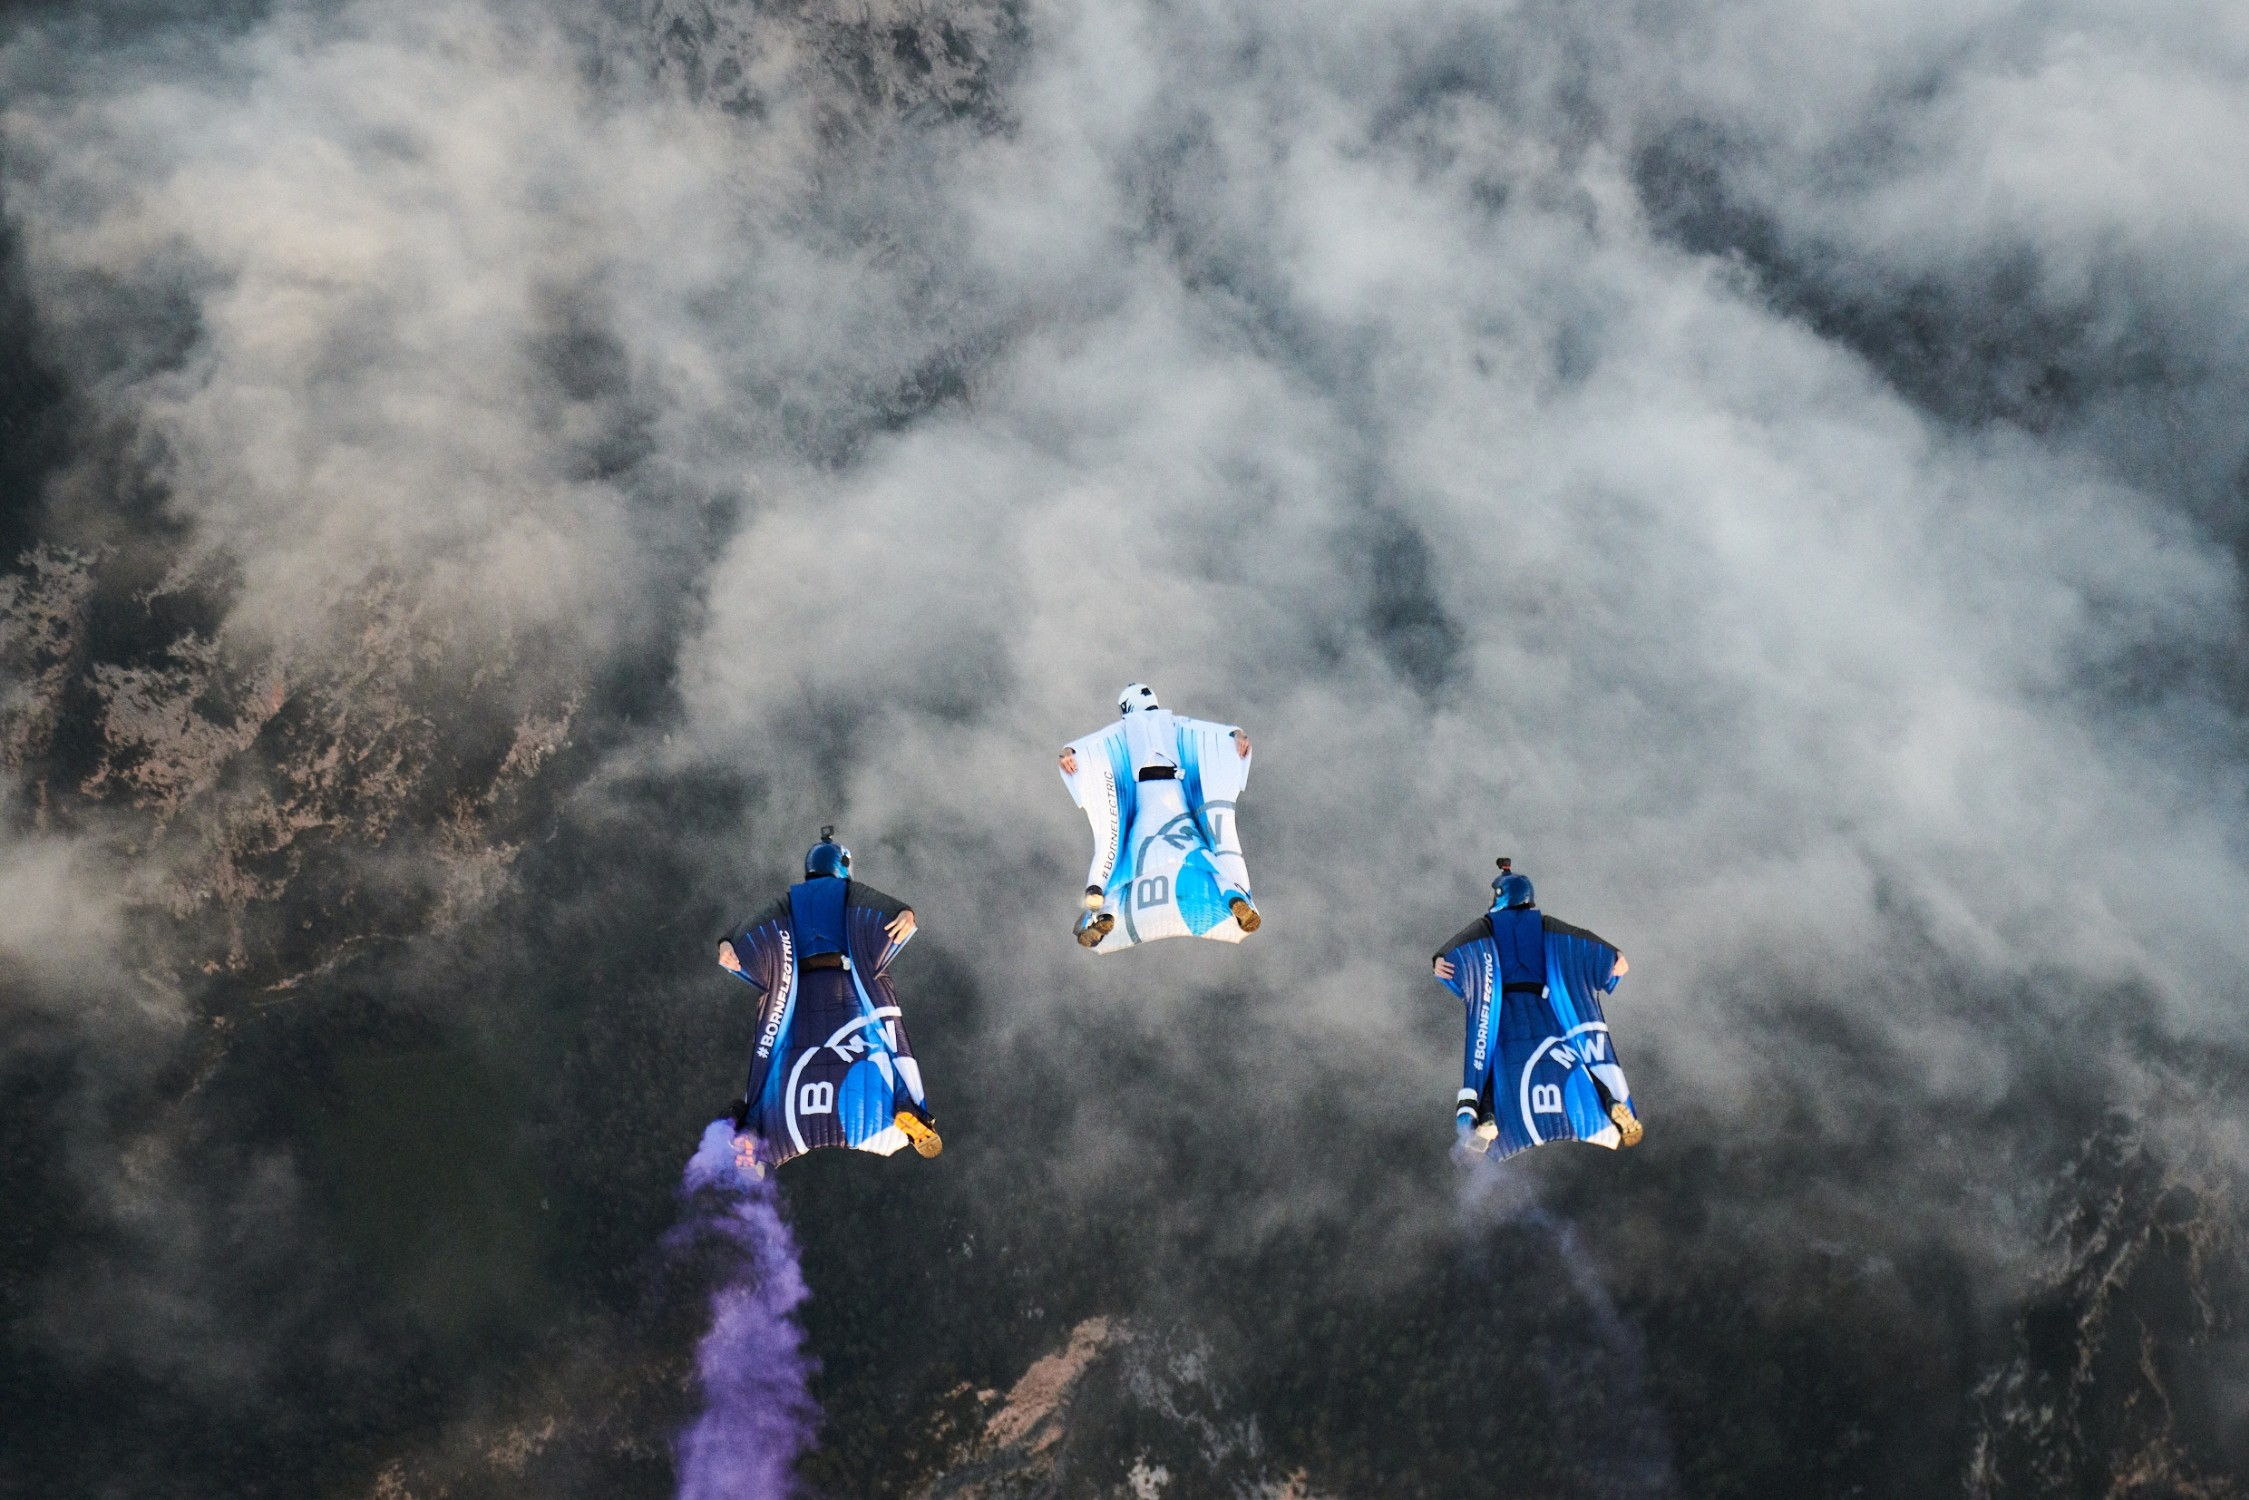 Three people flying with BMW Wingsuits.